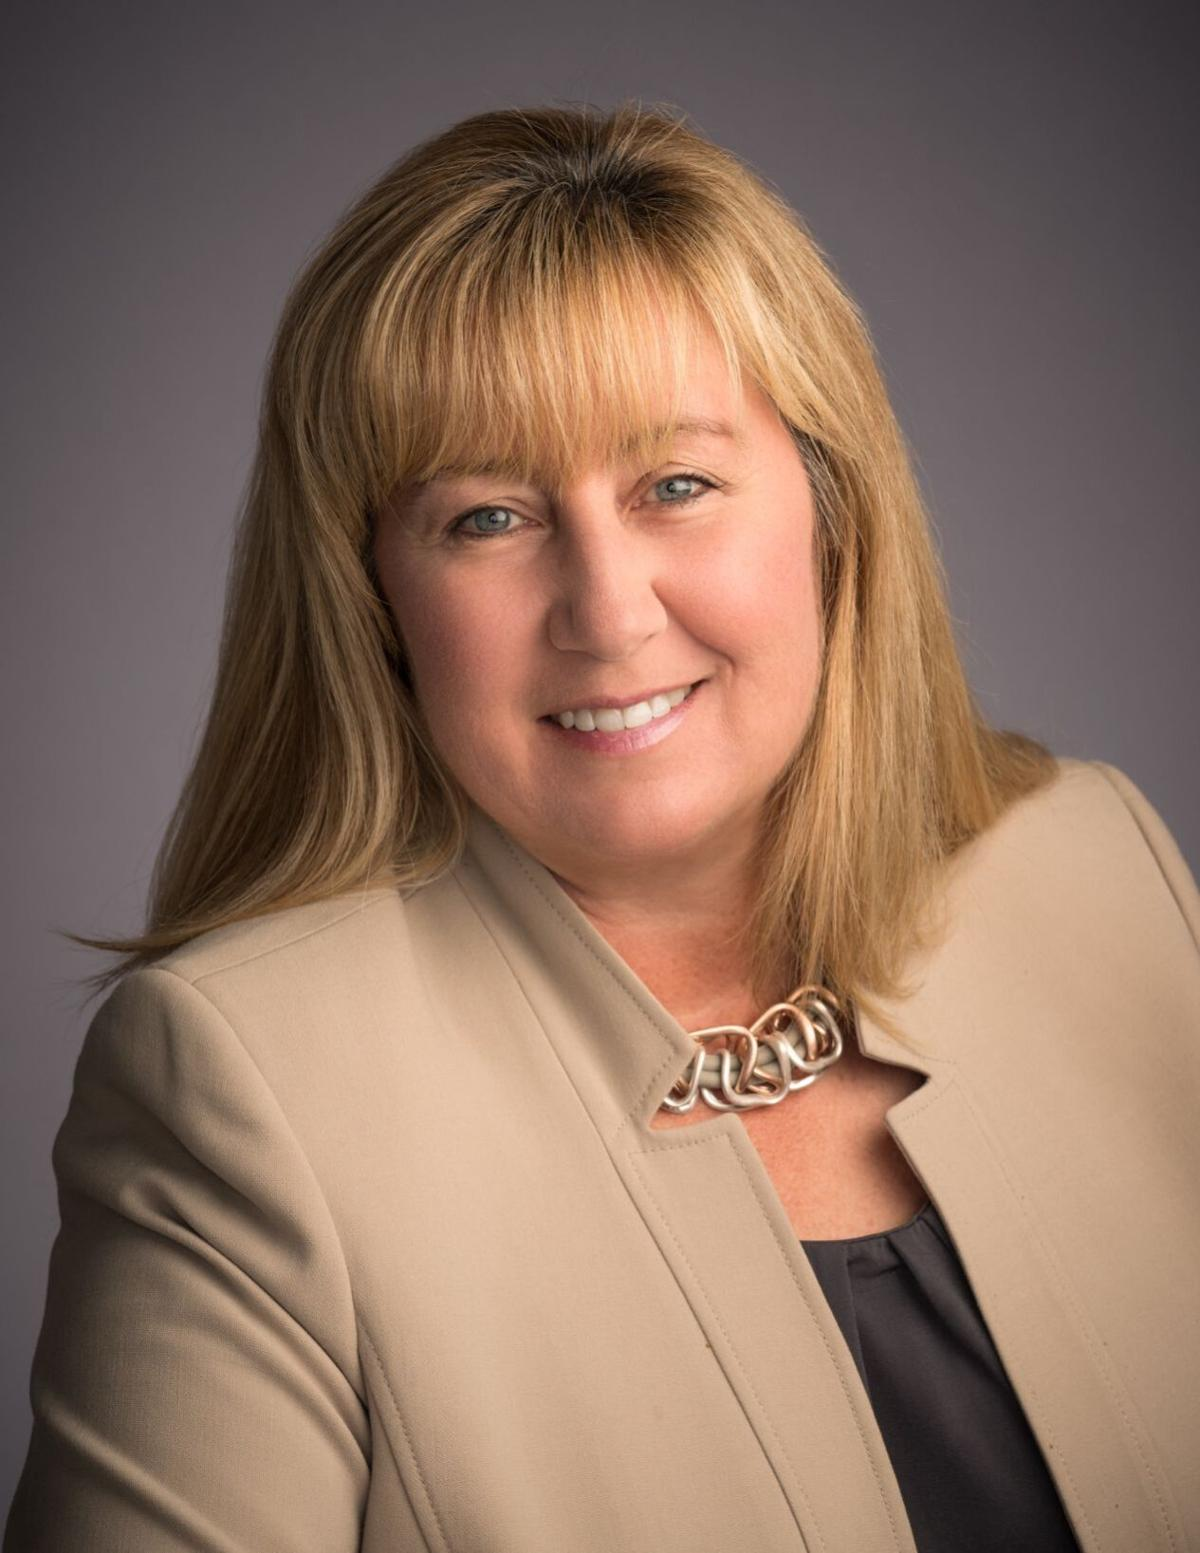 Local CEO among 'inspirational women leaders in tech'